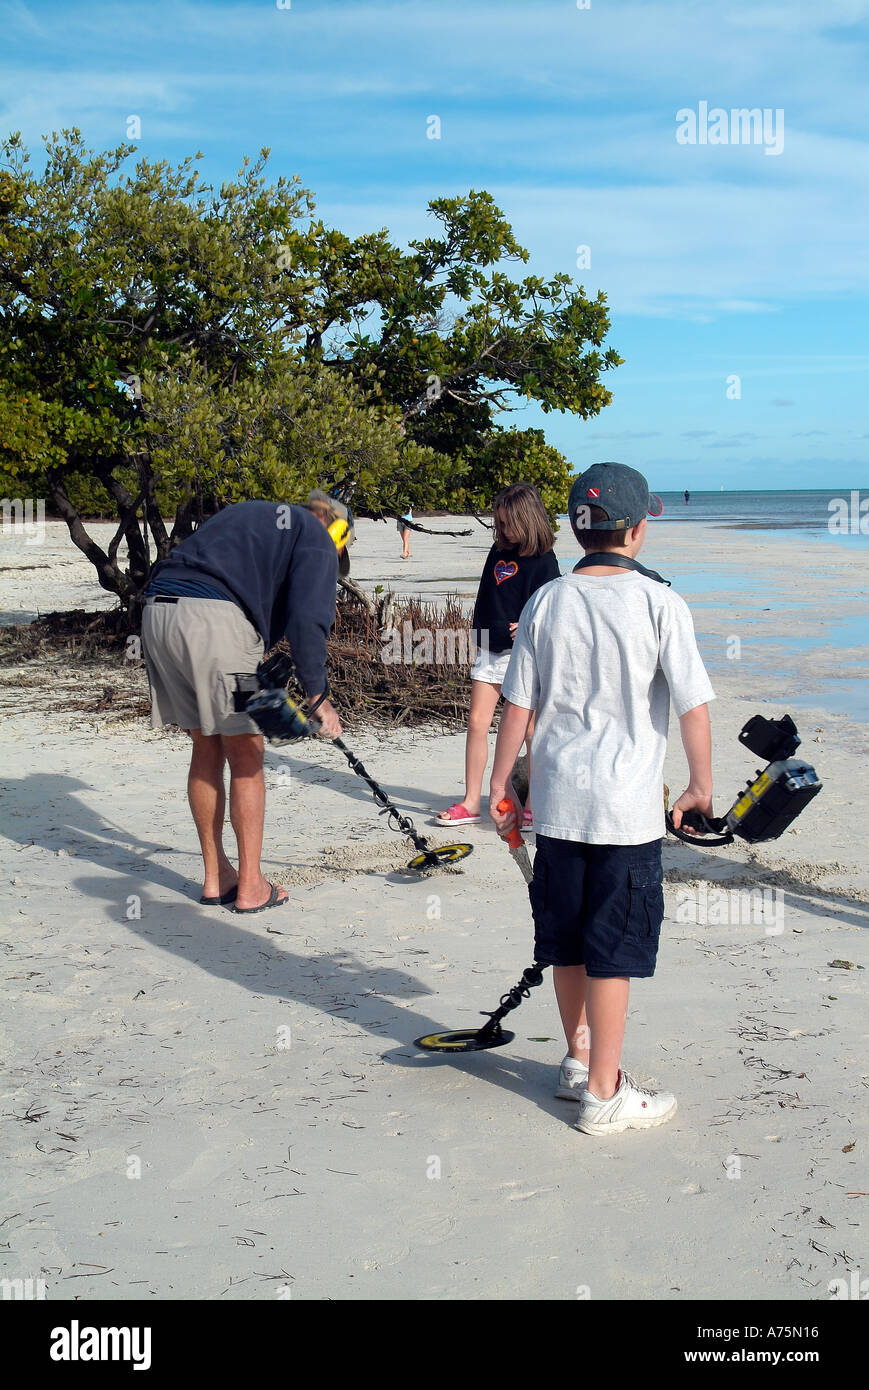 Treasure hunters with their metal detector on a beach - Stock Image